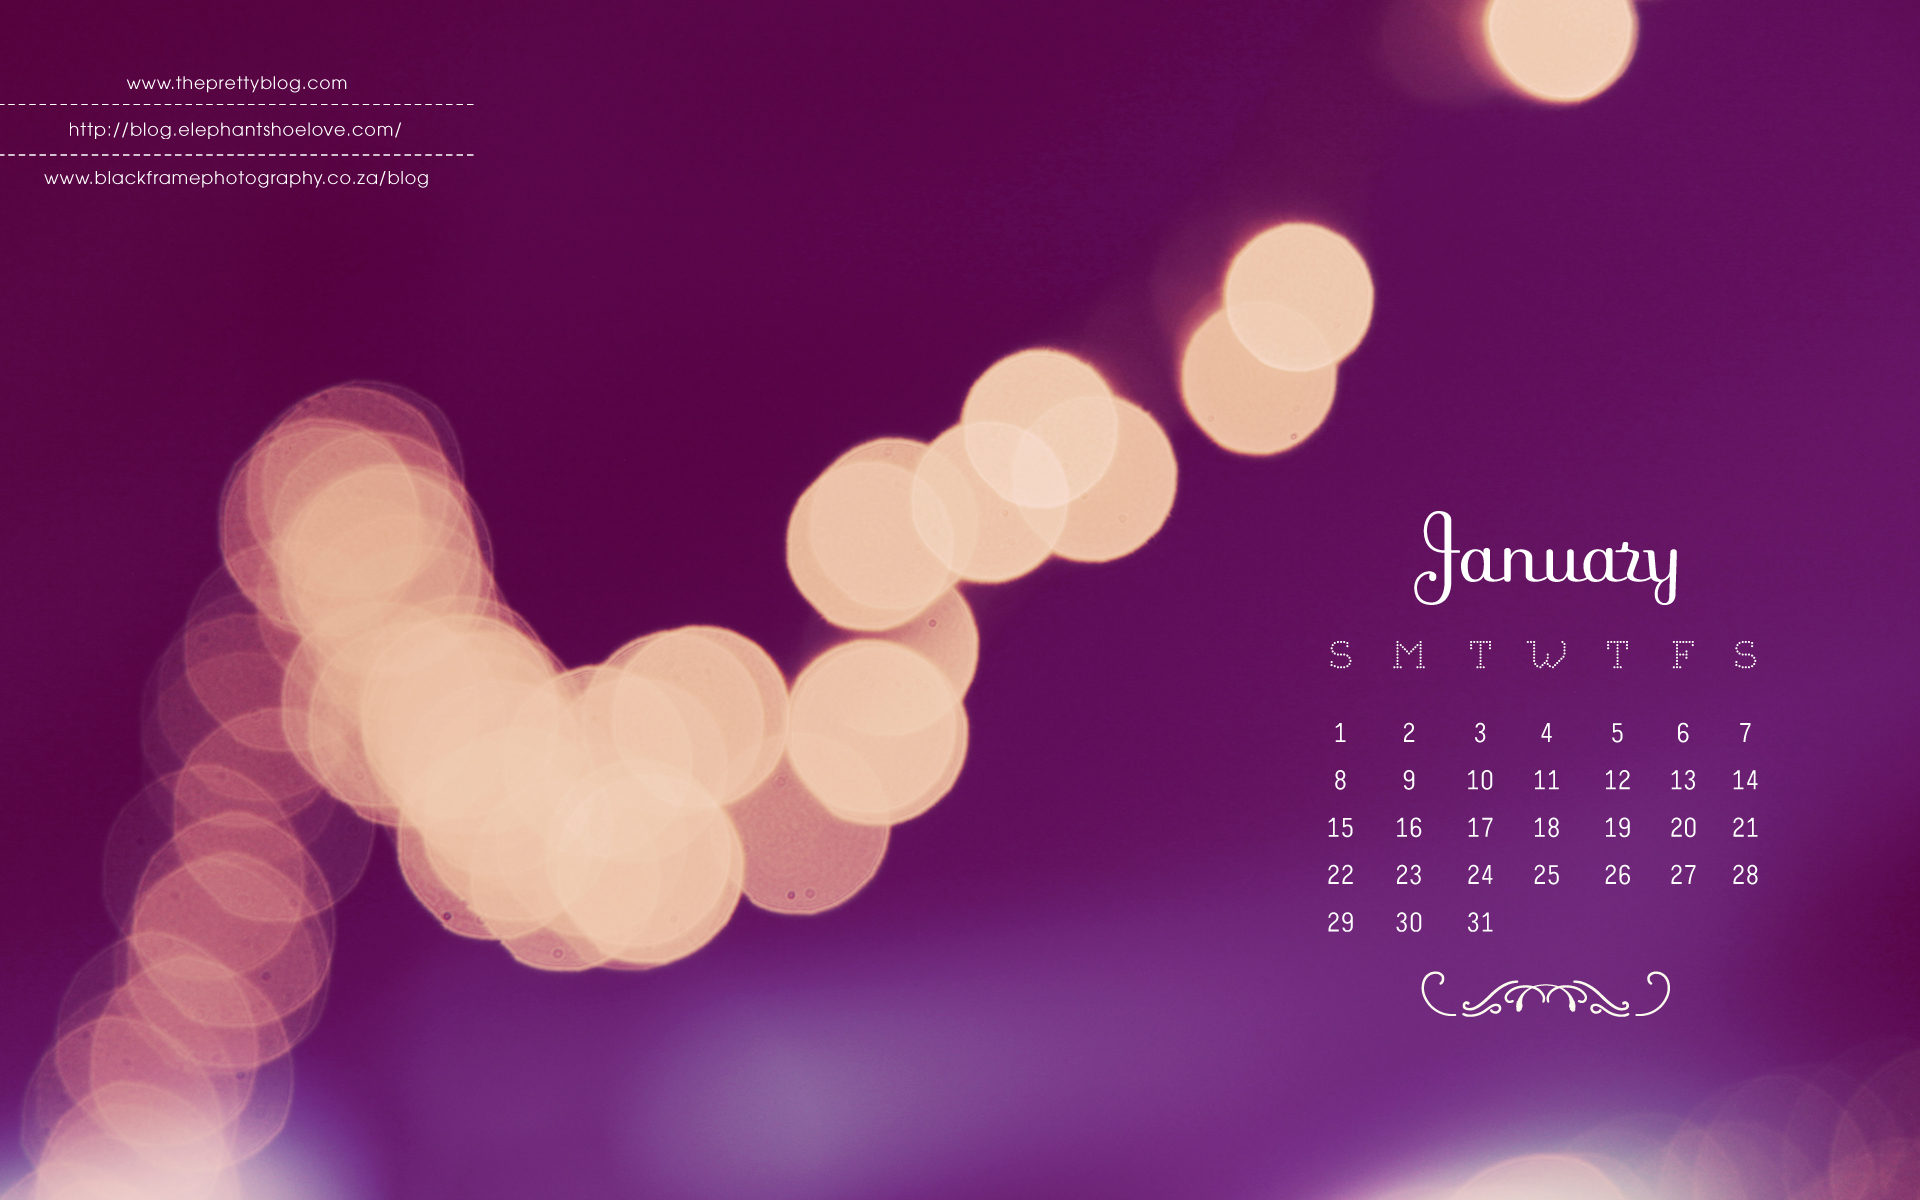 January Wallpaper 2016  WallpaperSafari